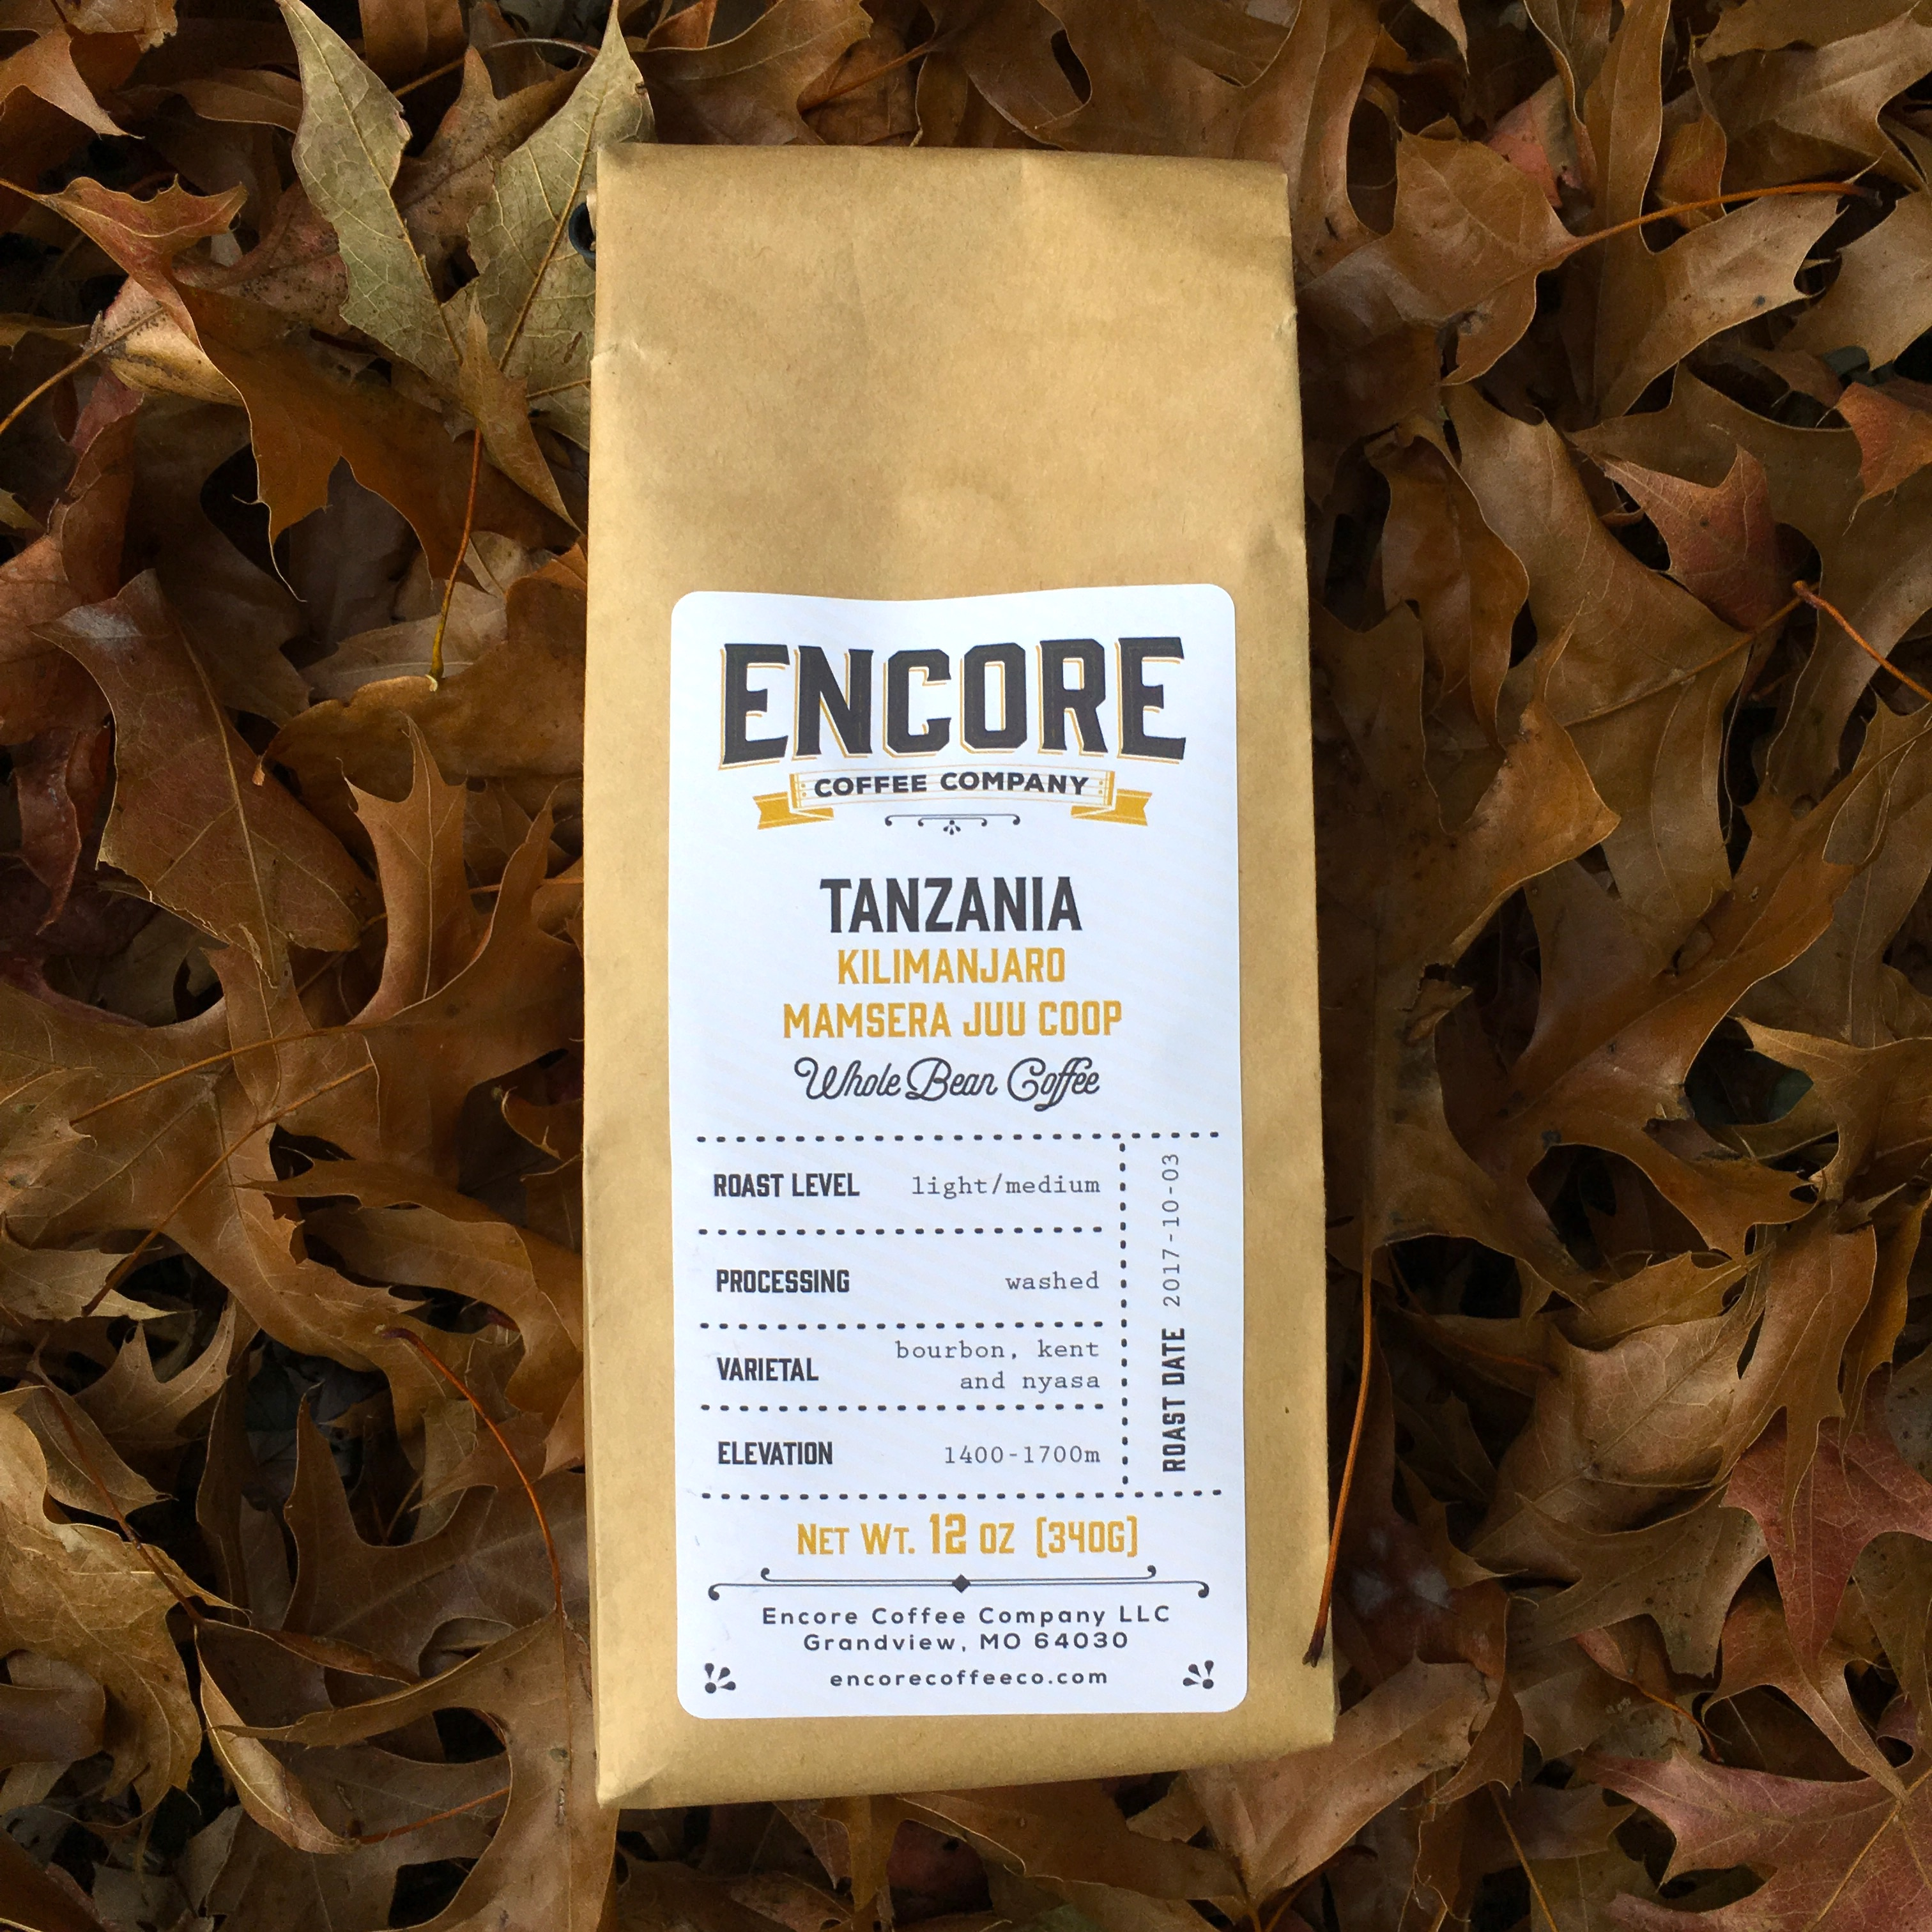 Encore Coffee Co. Tanzania Kilimanjaro Mamsera Juu Co-Op